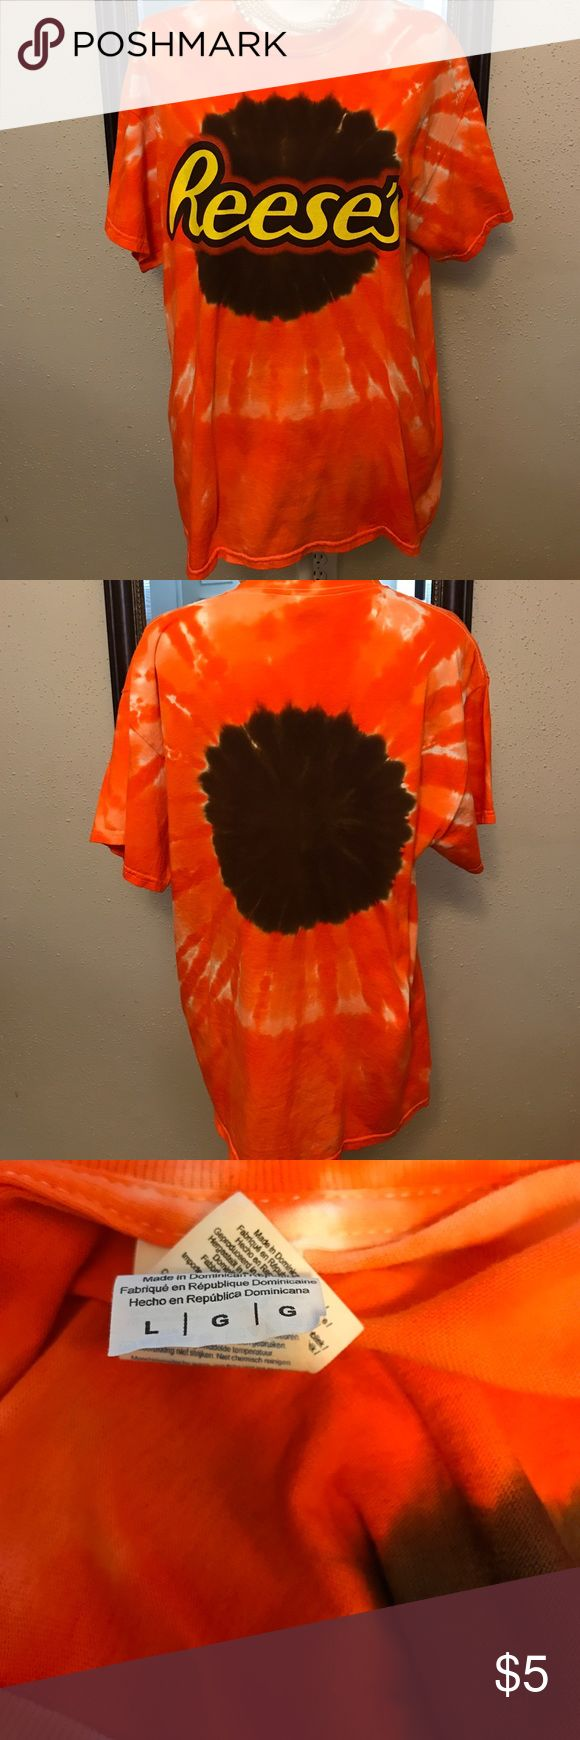 Reece's tie dye t-Shirt sz L Great condition no rips holes or stains from a smoke free home Tops Tees - Short Sleeve